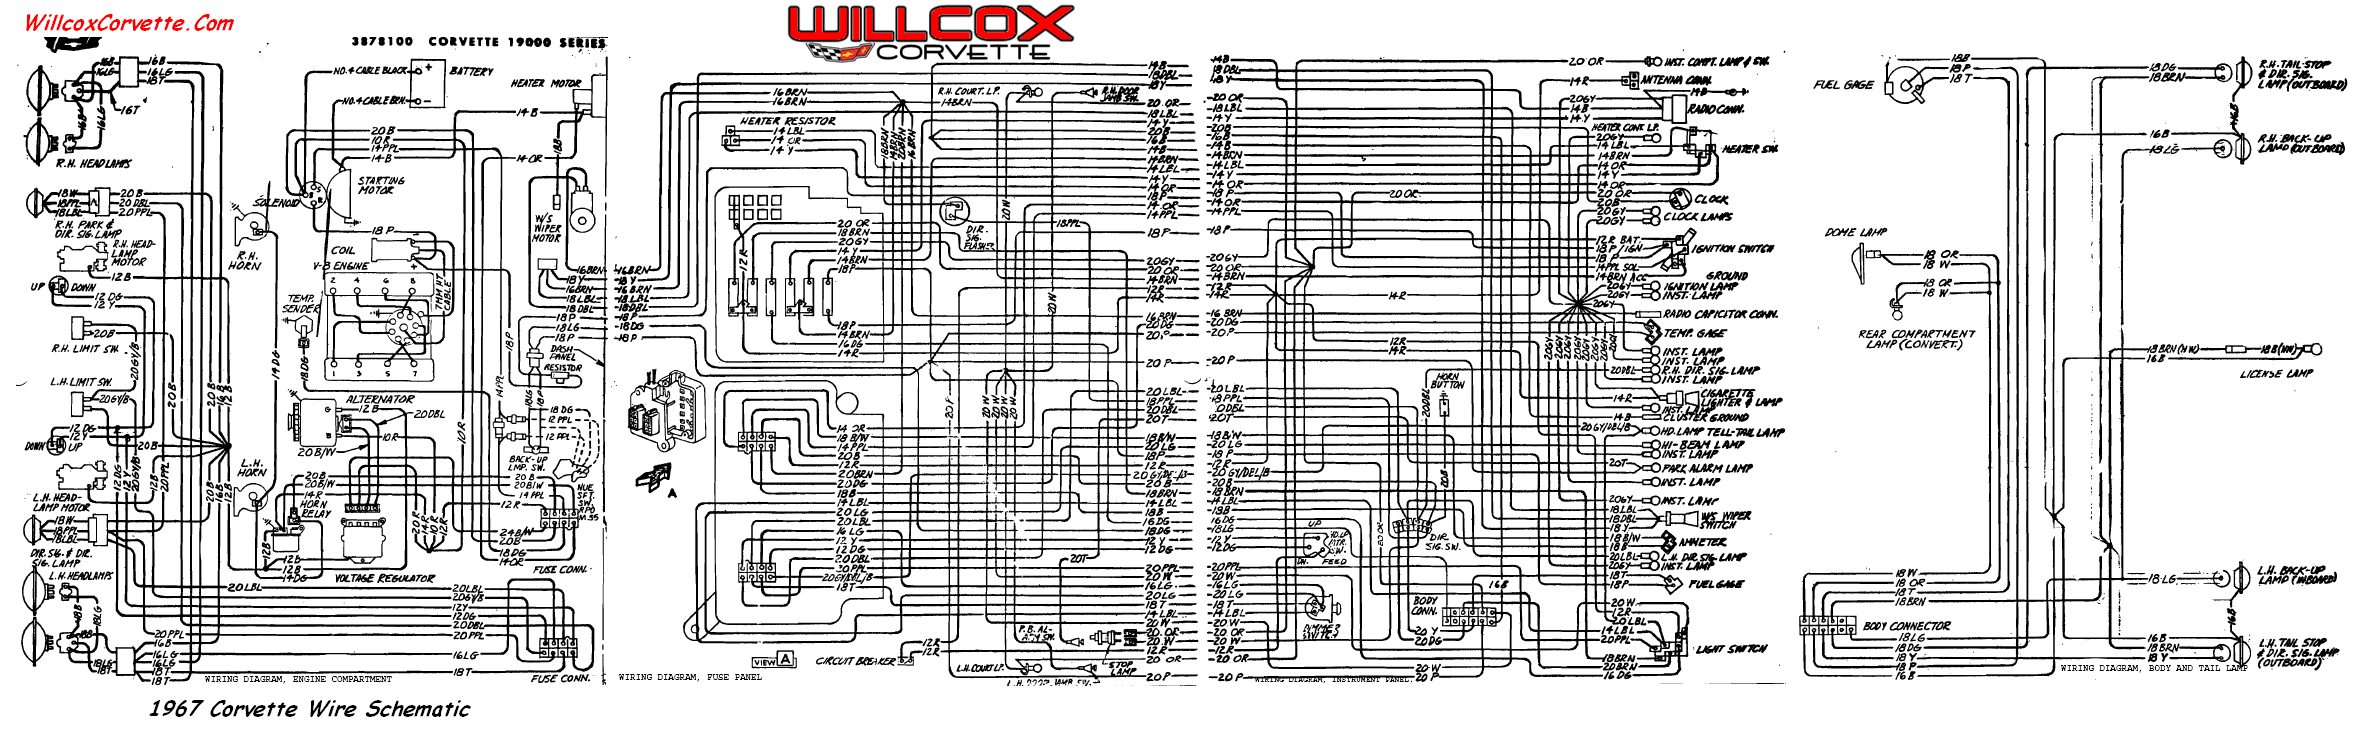 [SCHEMATICS_48DE]  1995 Monte Carlo Fuse Box Diagram Wiring Schematic Diagram Base Website  Wiring Schematic - GOVERNMENTVENNDIAGRAM.CASTELLOVERTINE.IT | Hot Rod Schymatic Fuse Box |  | castellovertine